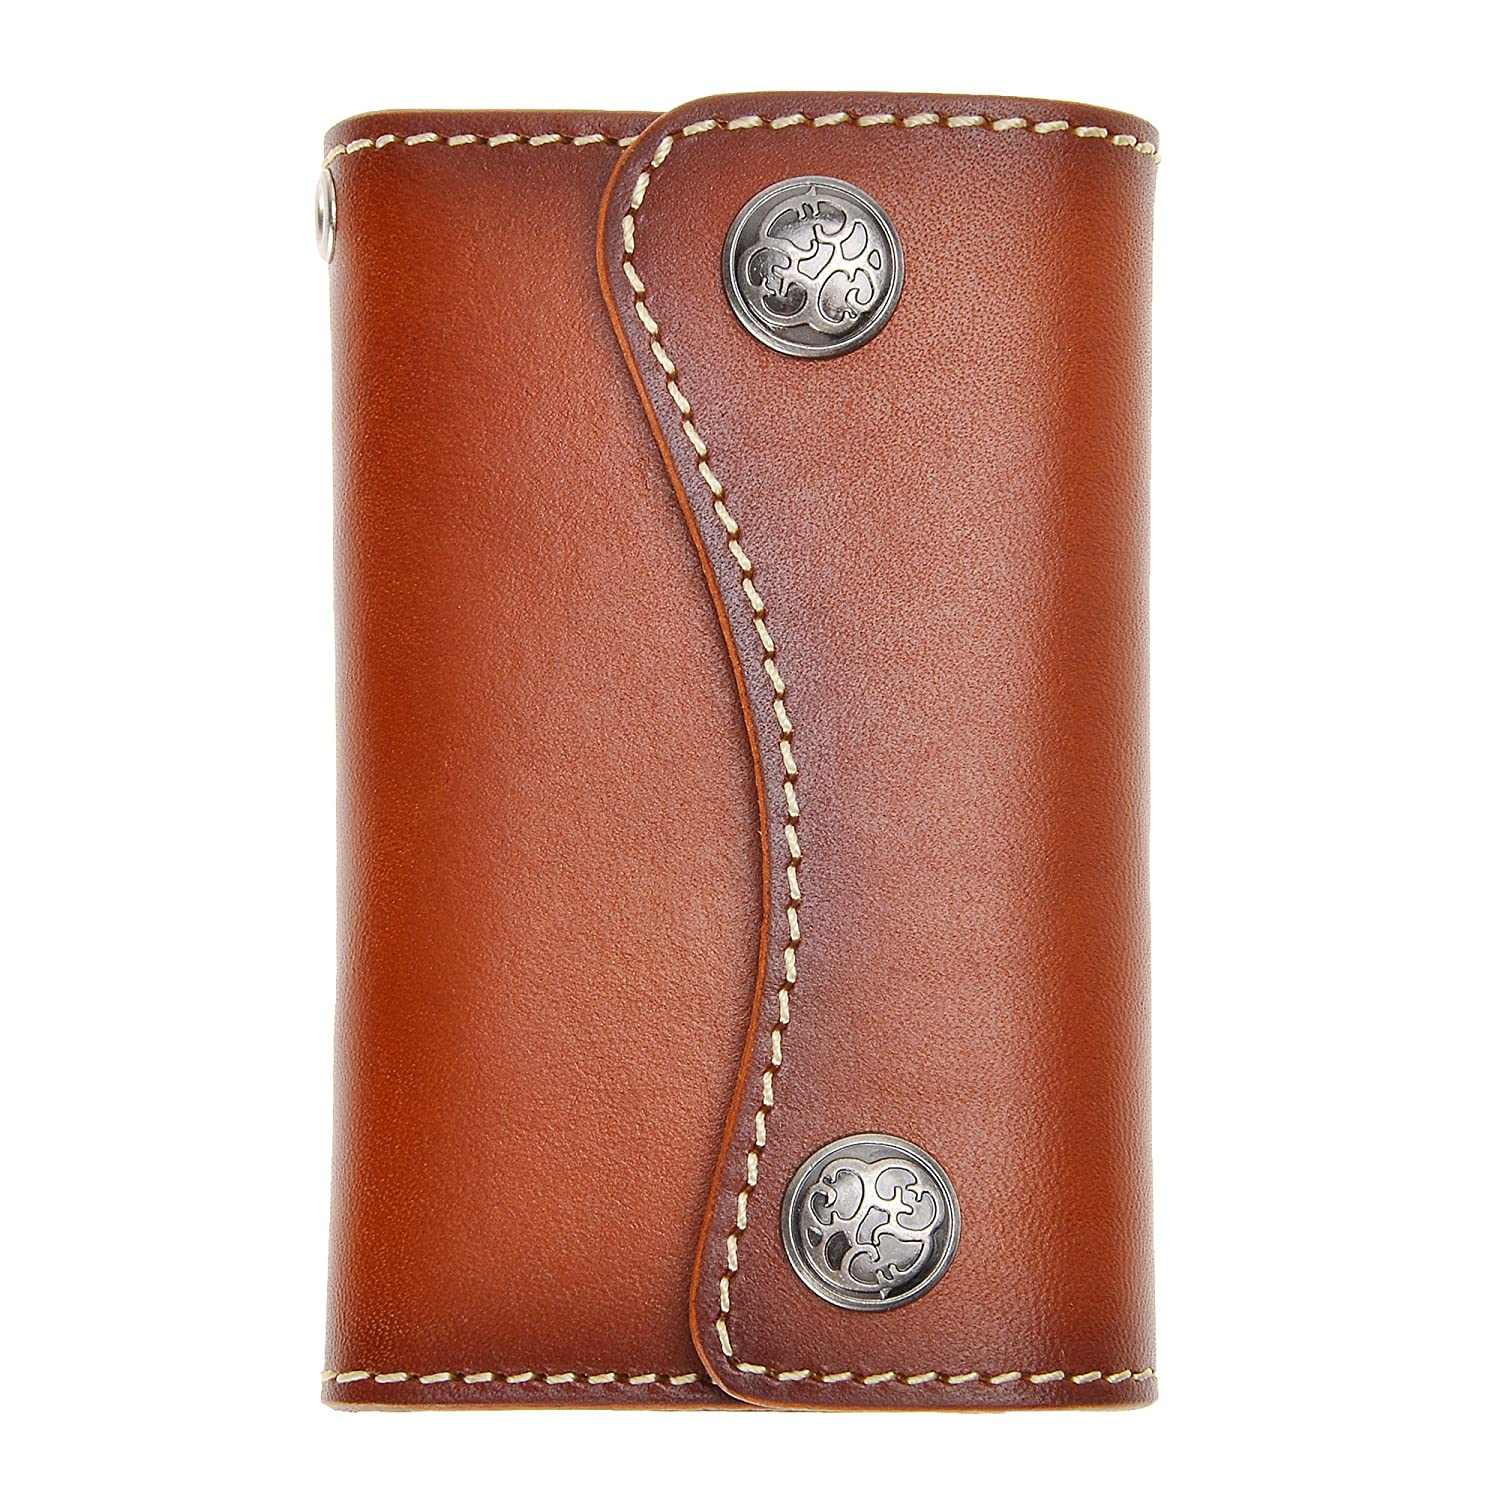 Genuine Leather 6 Hook Key Holder Wallet Pouch Case Button Closure for Mens Womens by ZLYC with Card Holder, Brown ZYJ-KW-003-BR